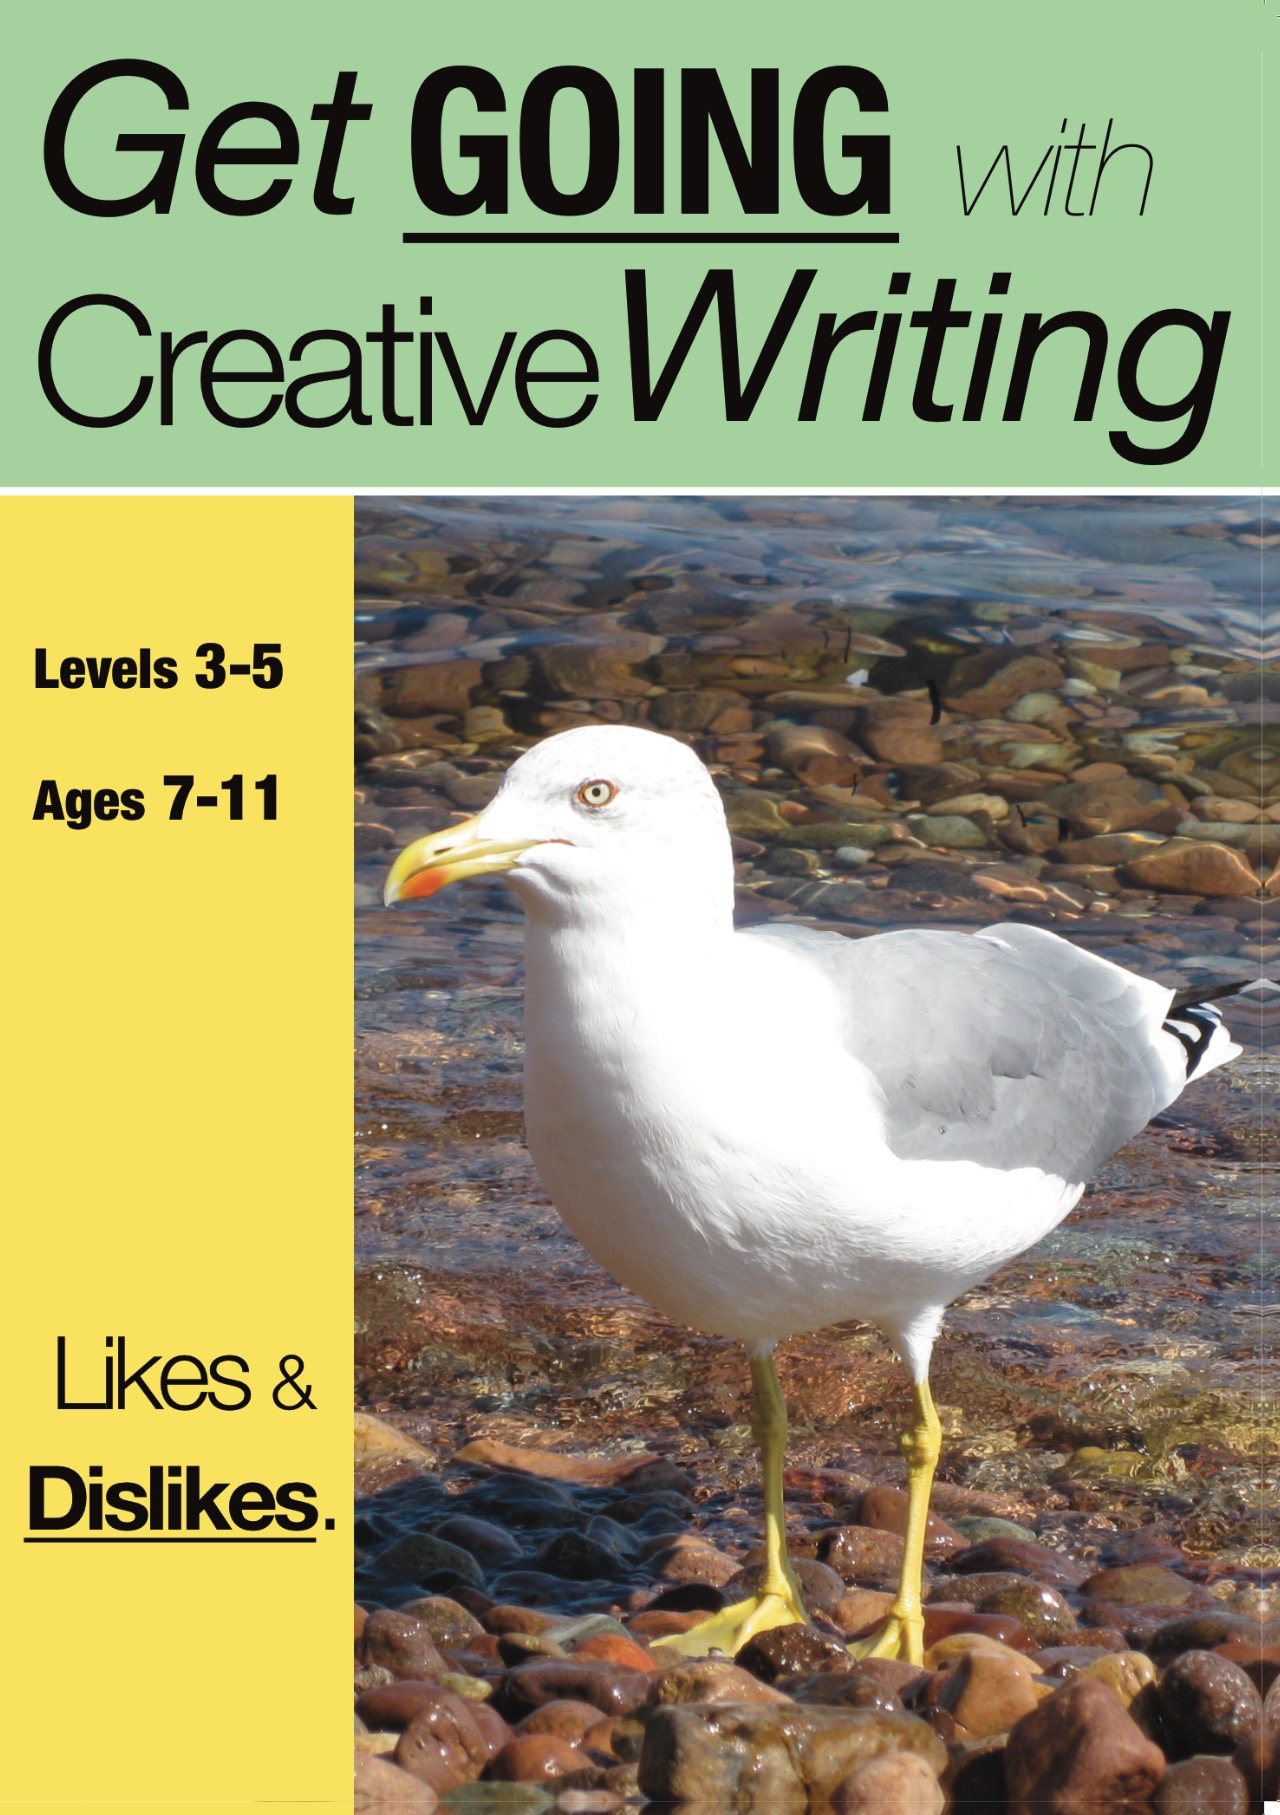 Likes & Dislikes: Get Going With Creative Writing (and other forms of writing) ( 7-11) Print Version